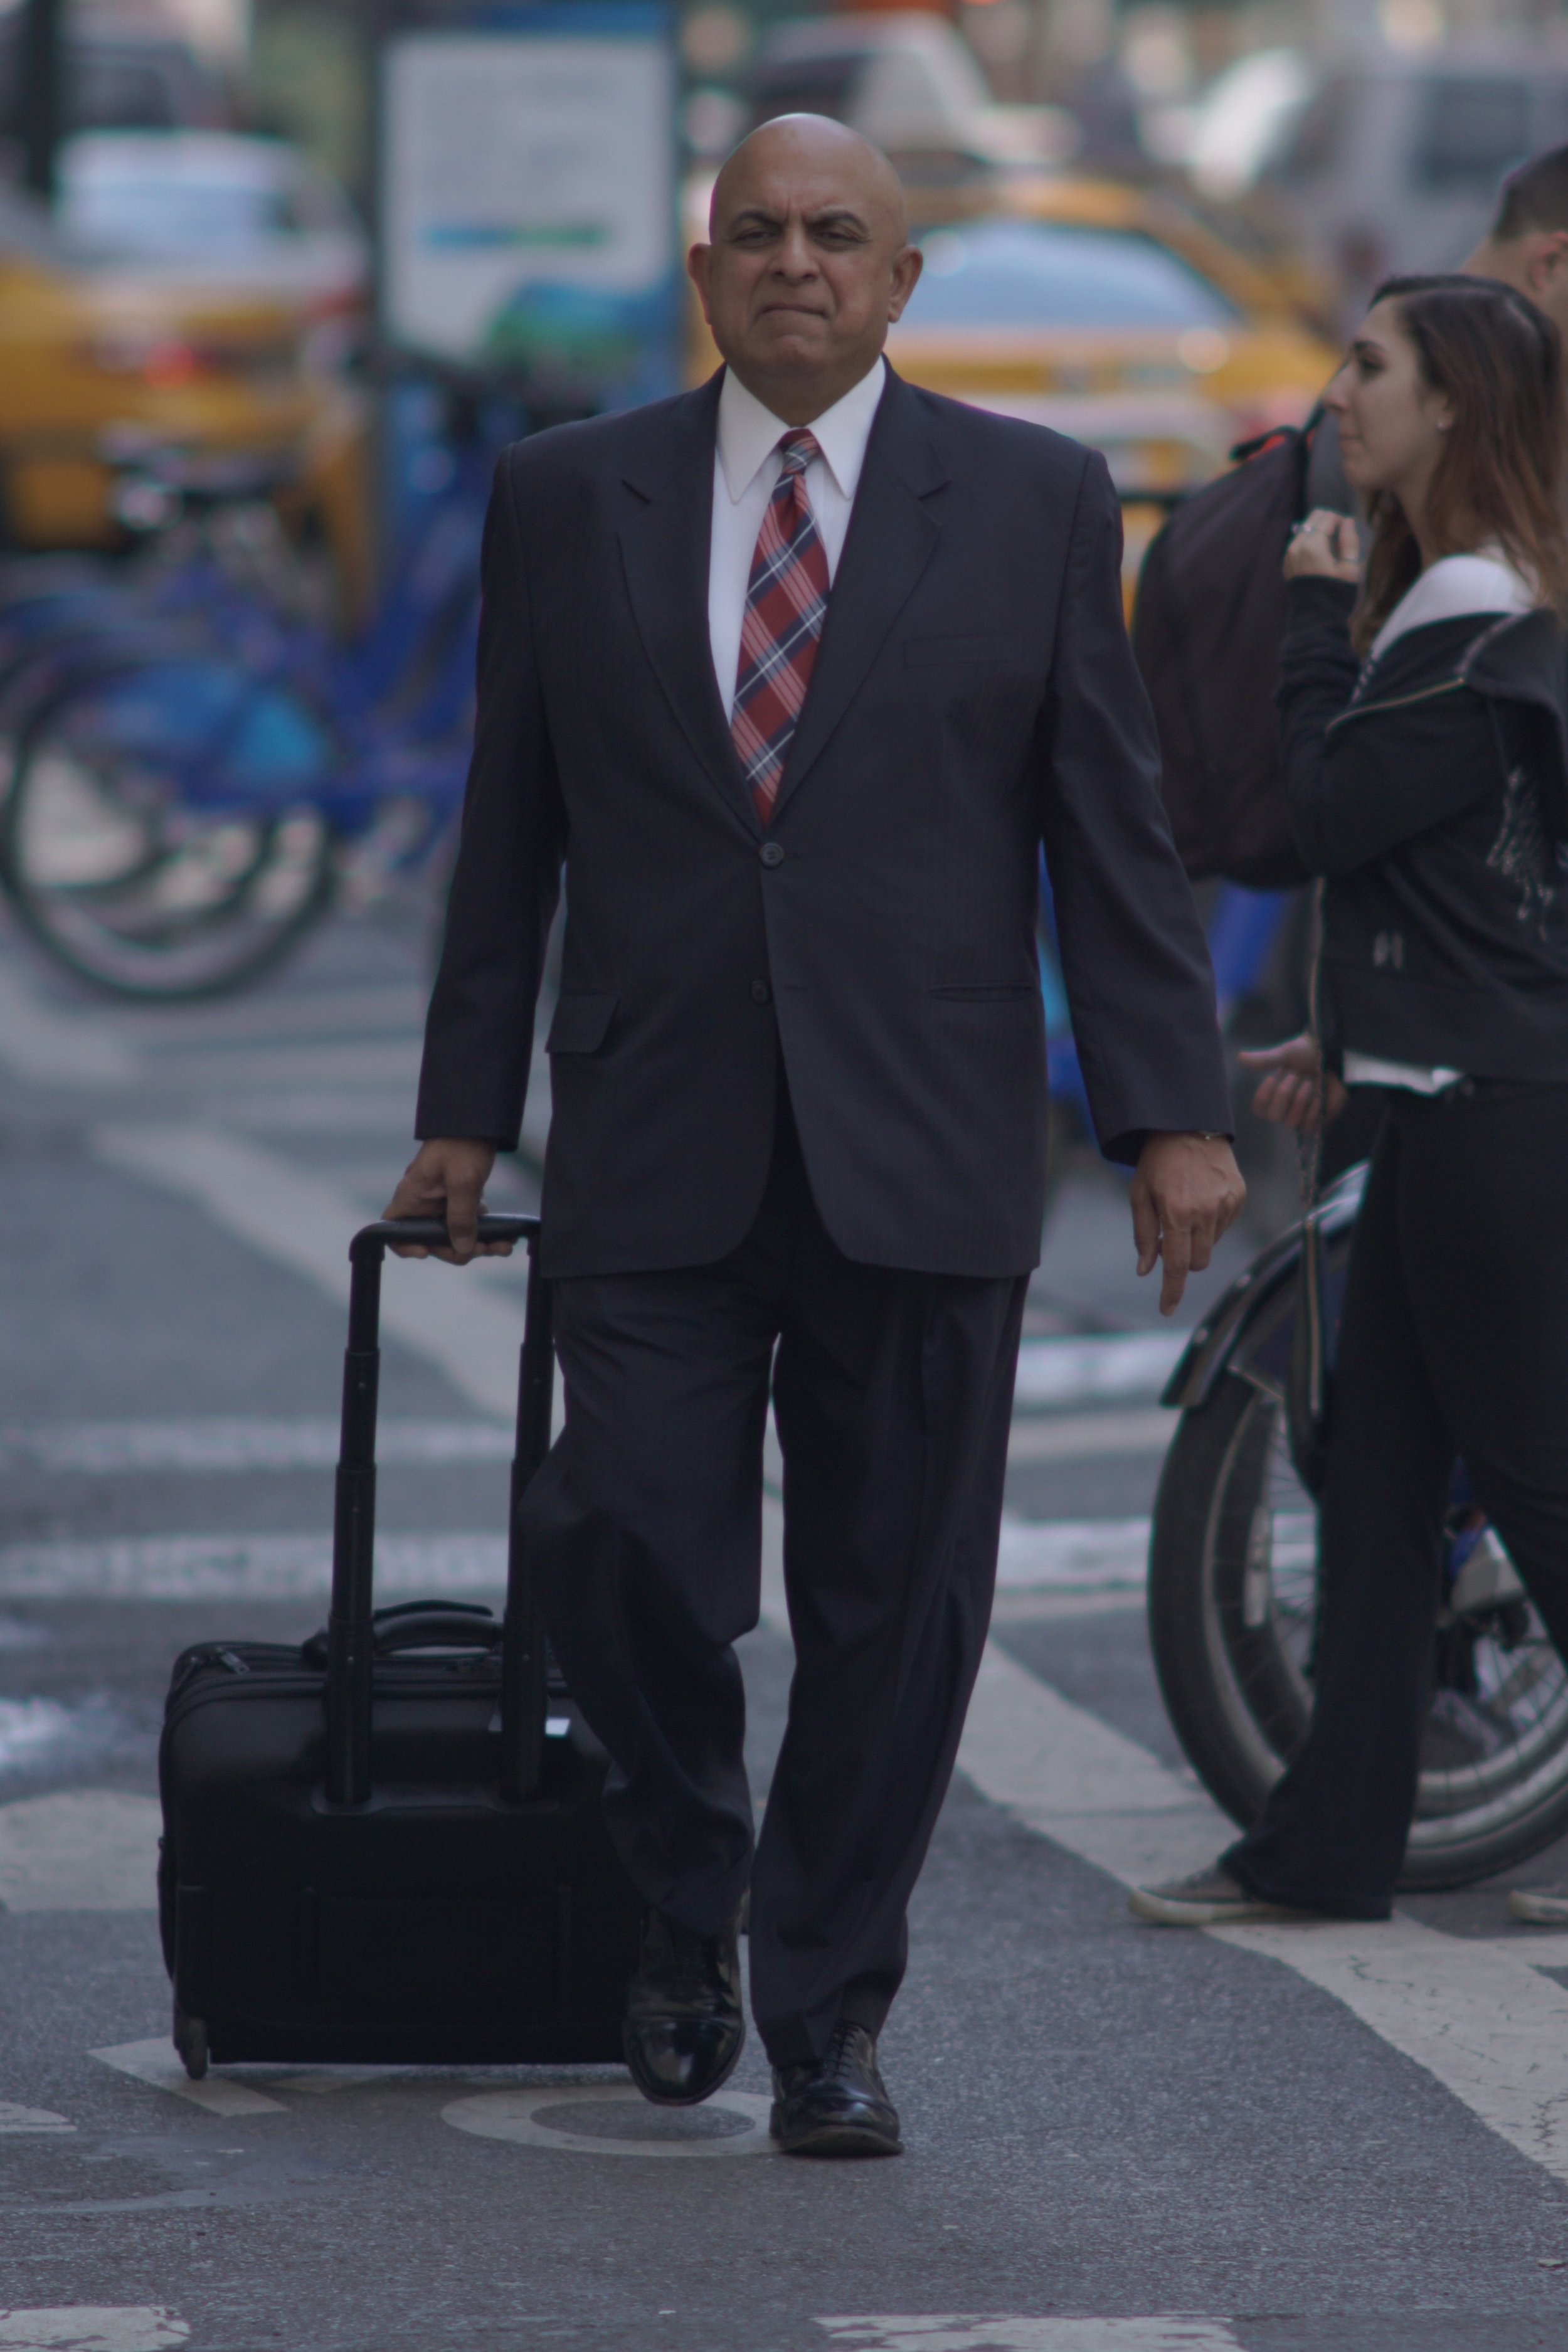 Street Photography with A Telephoto Lens, man in suit